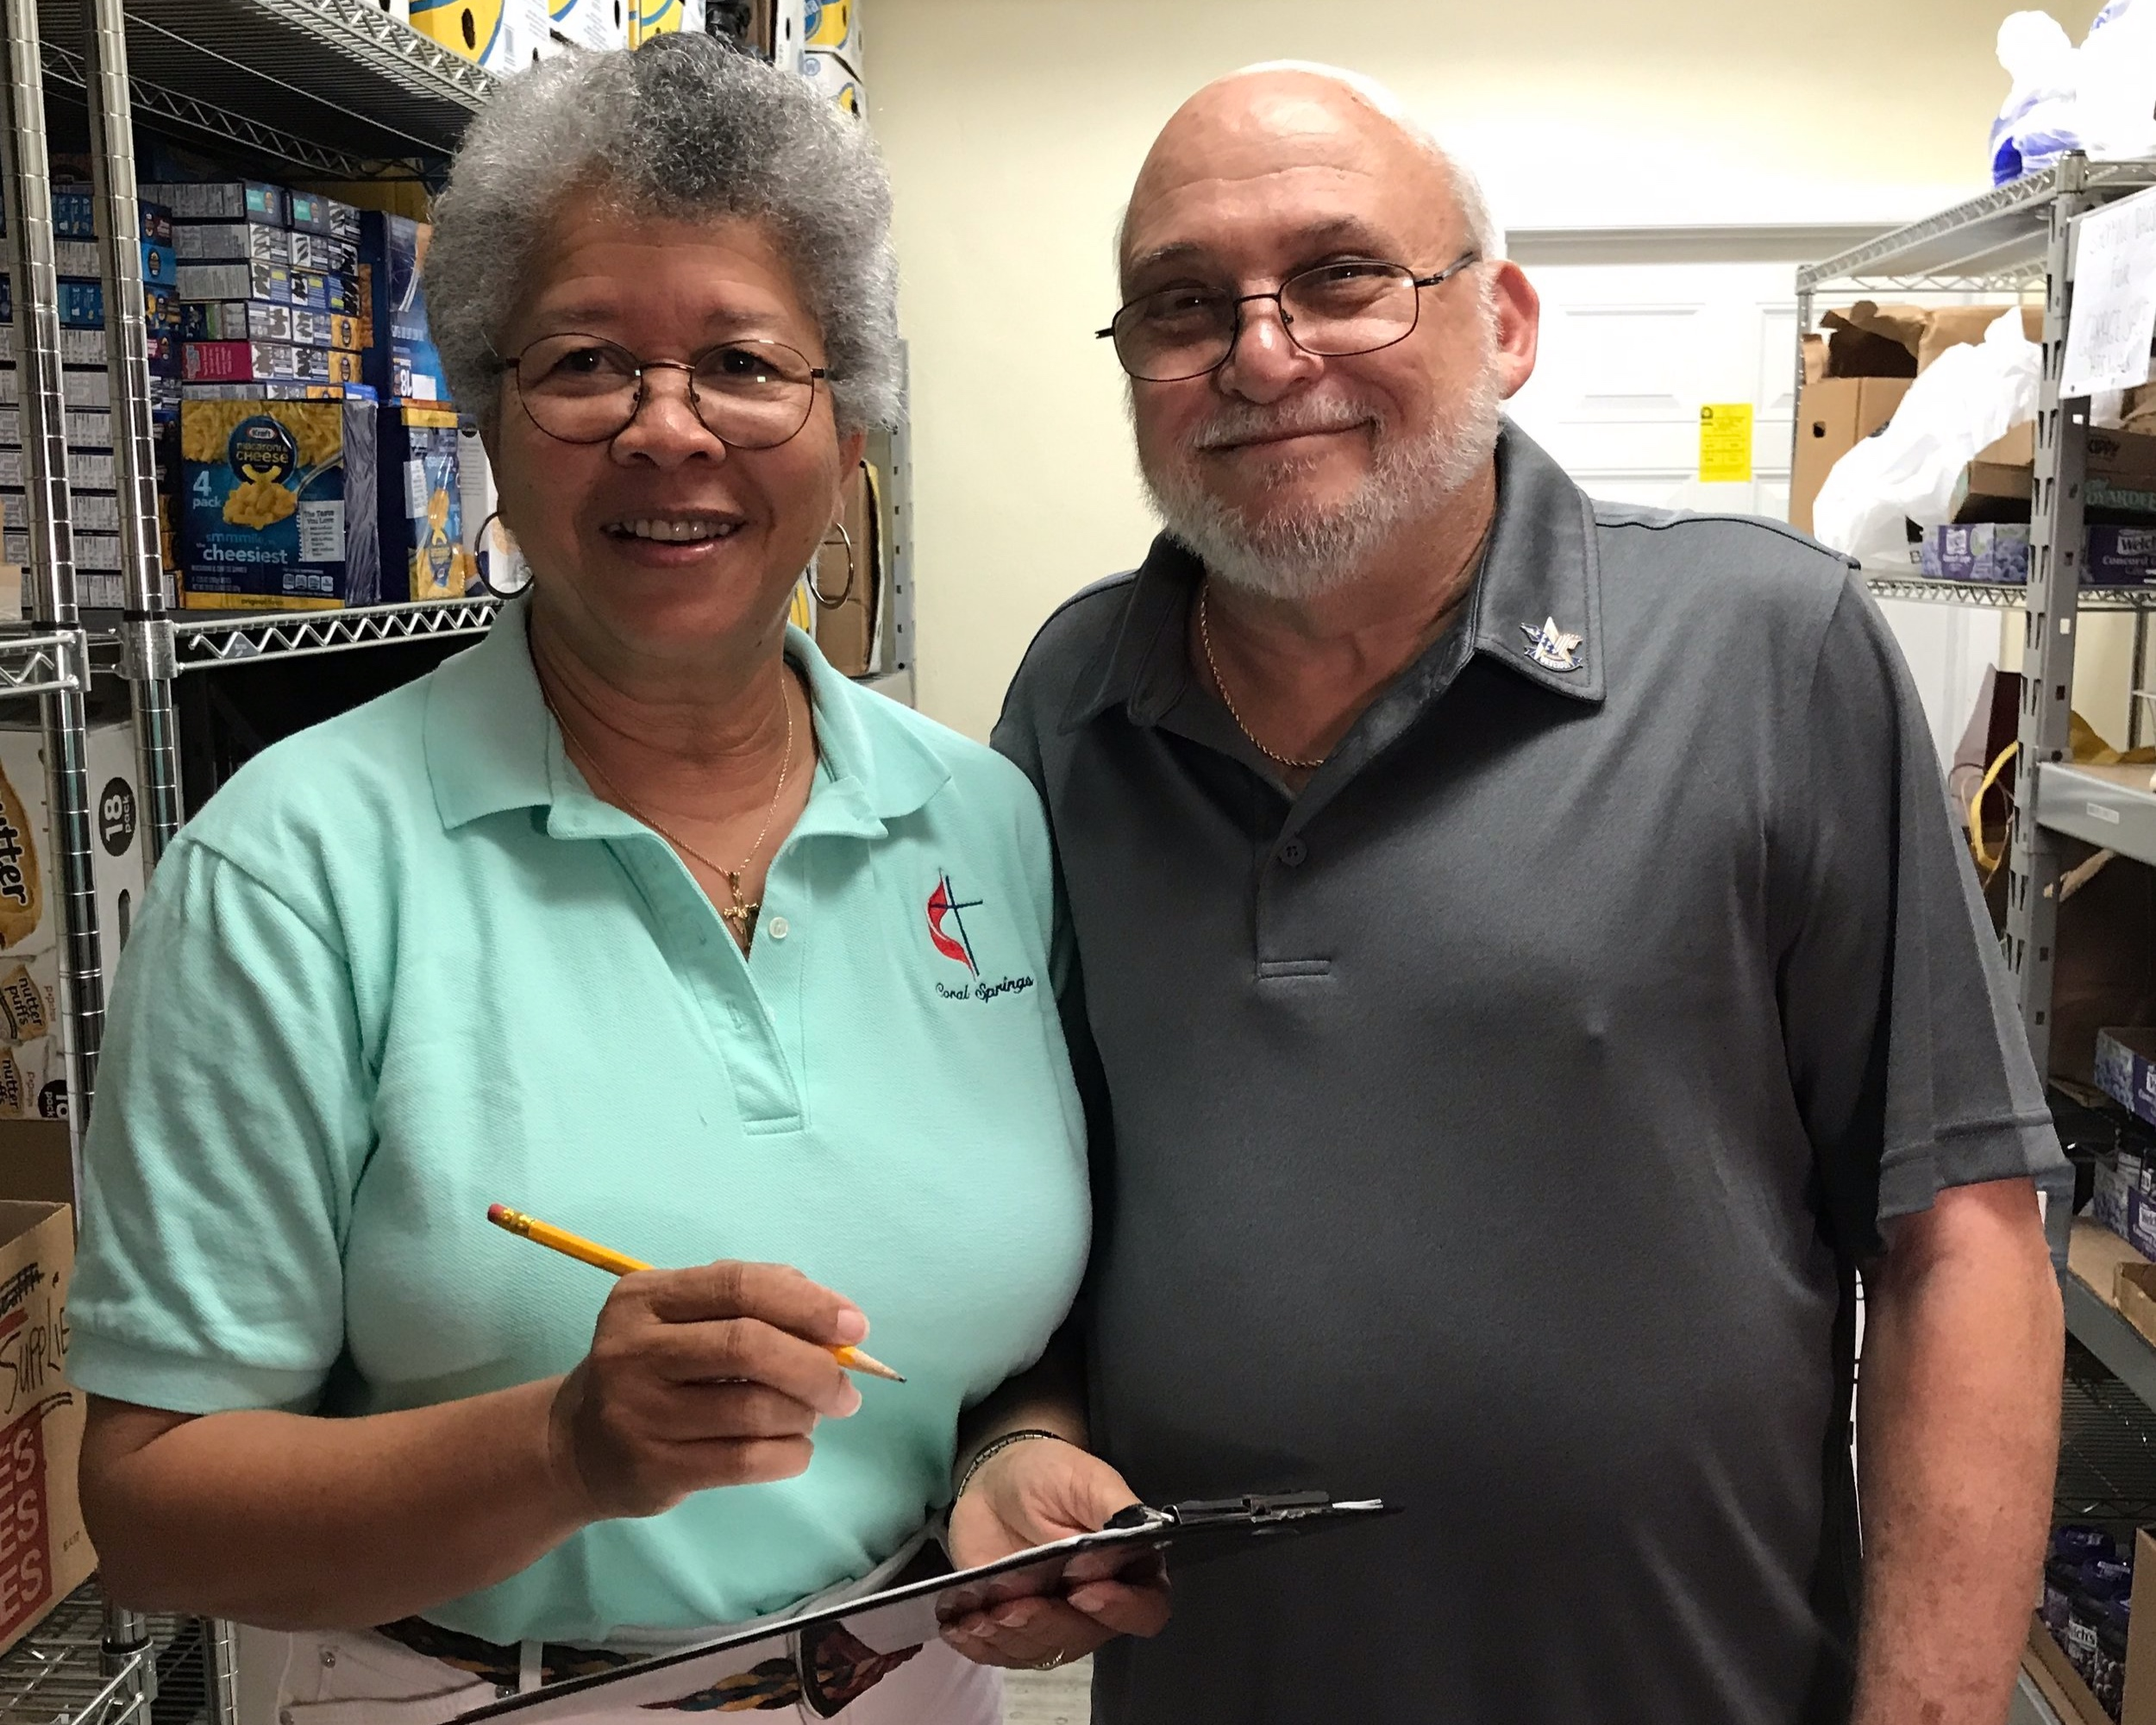 Food Pantry - The food pantry provides non-perishable food forHis Walk Ministries and others in need. It alsosupplies snack bags for the hungry, which are keptin the church office. Please leave your fooddonations in the shopping carts located in front ofthe sanctuary on Sunday mornings.